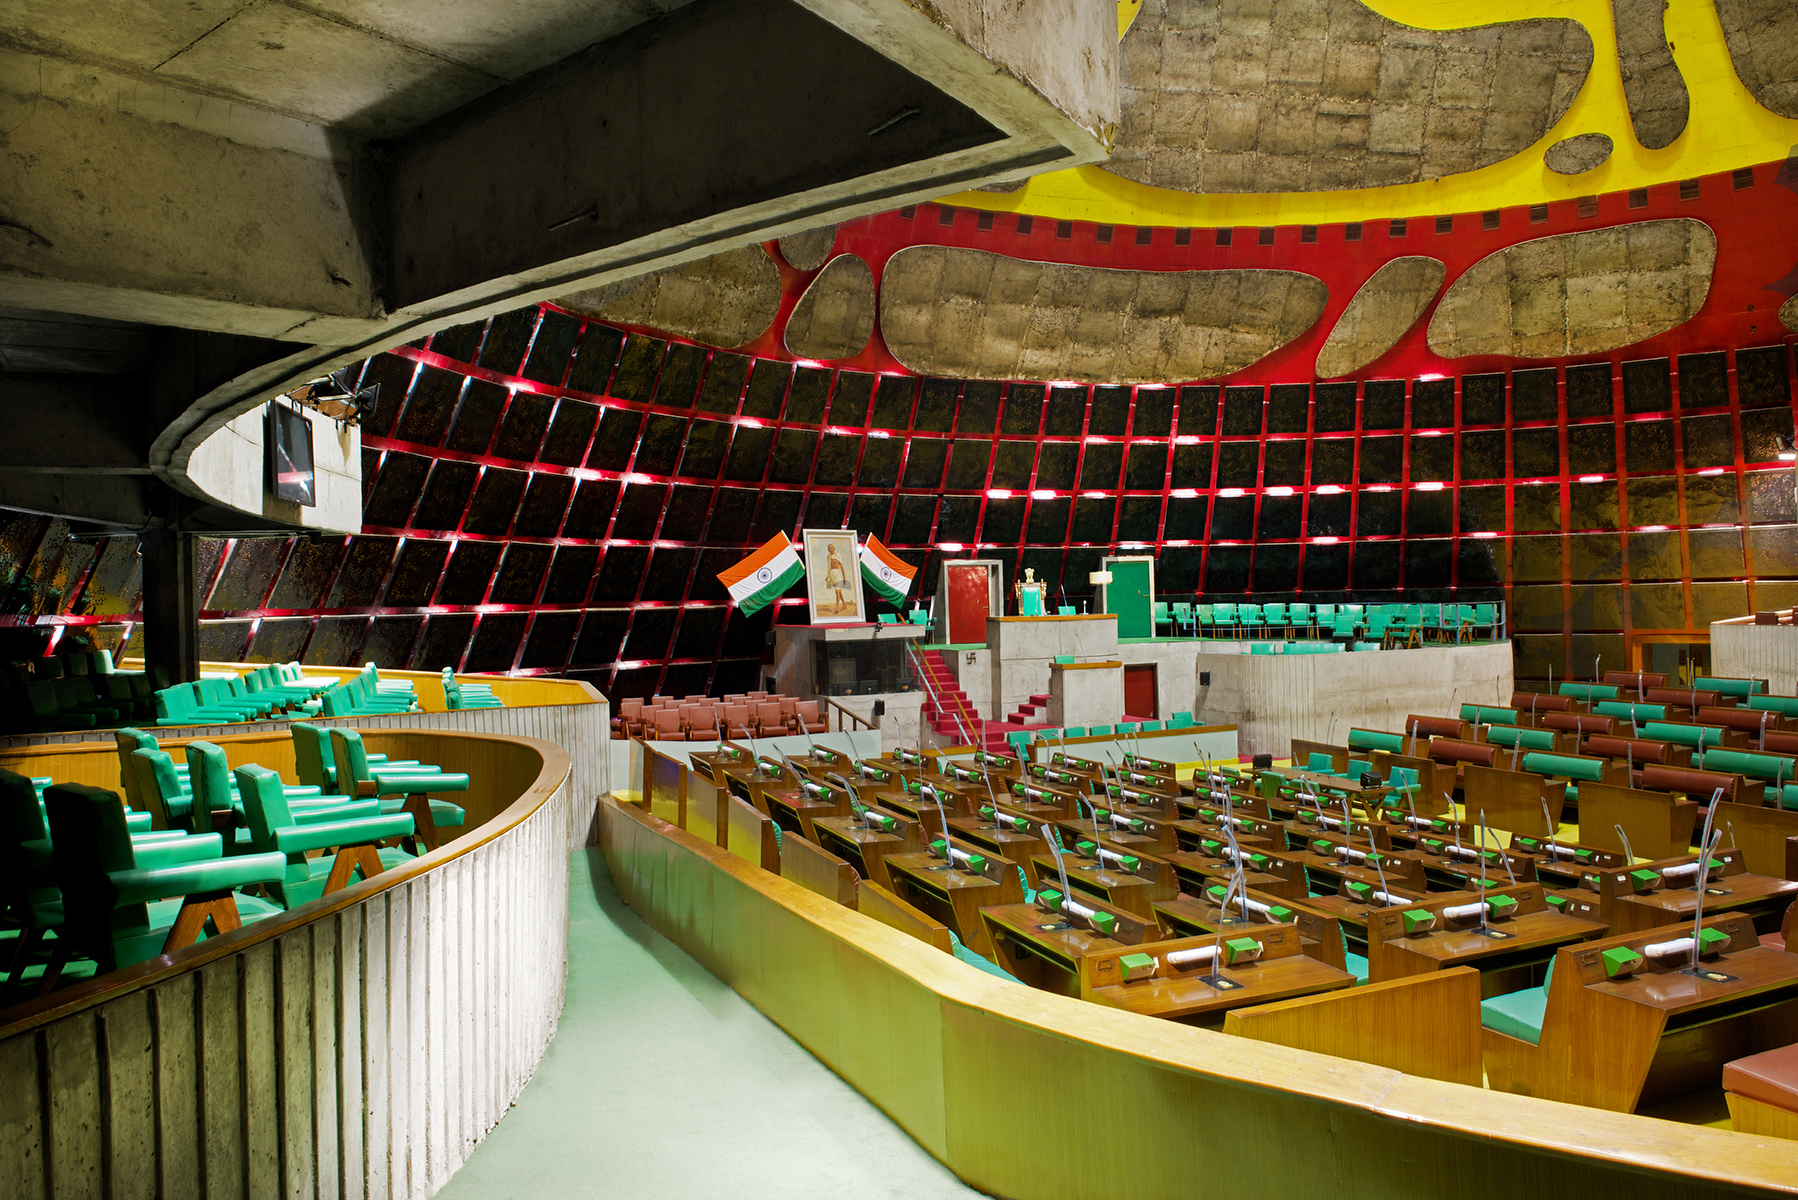 Carte Inde Chandigarh.Le Corbusier S Utopian City Chandigarh And Its Faded Glory